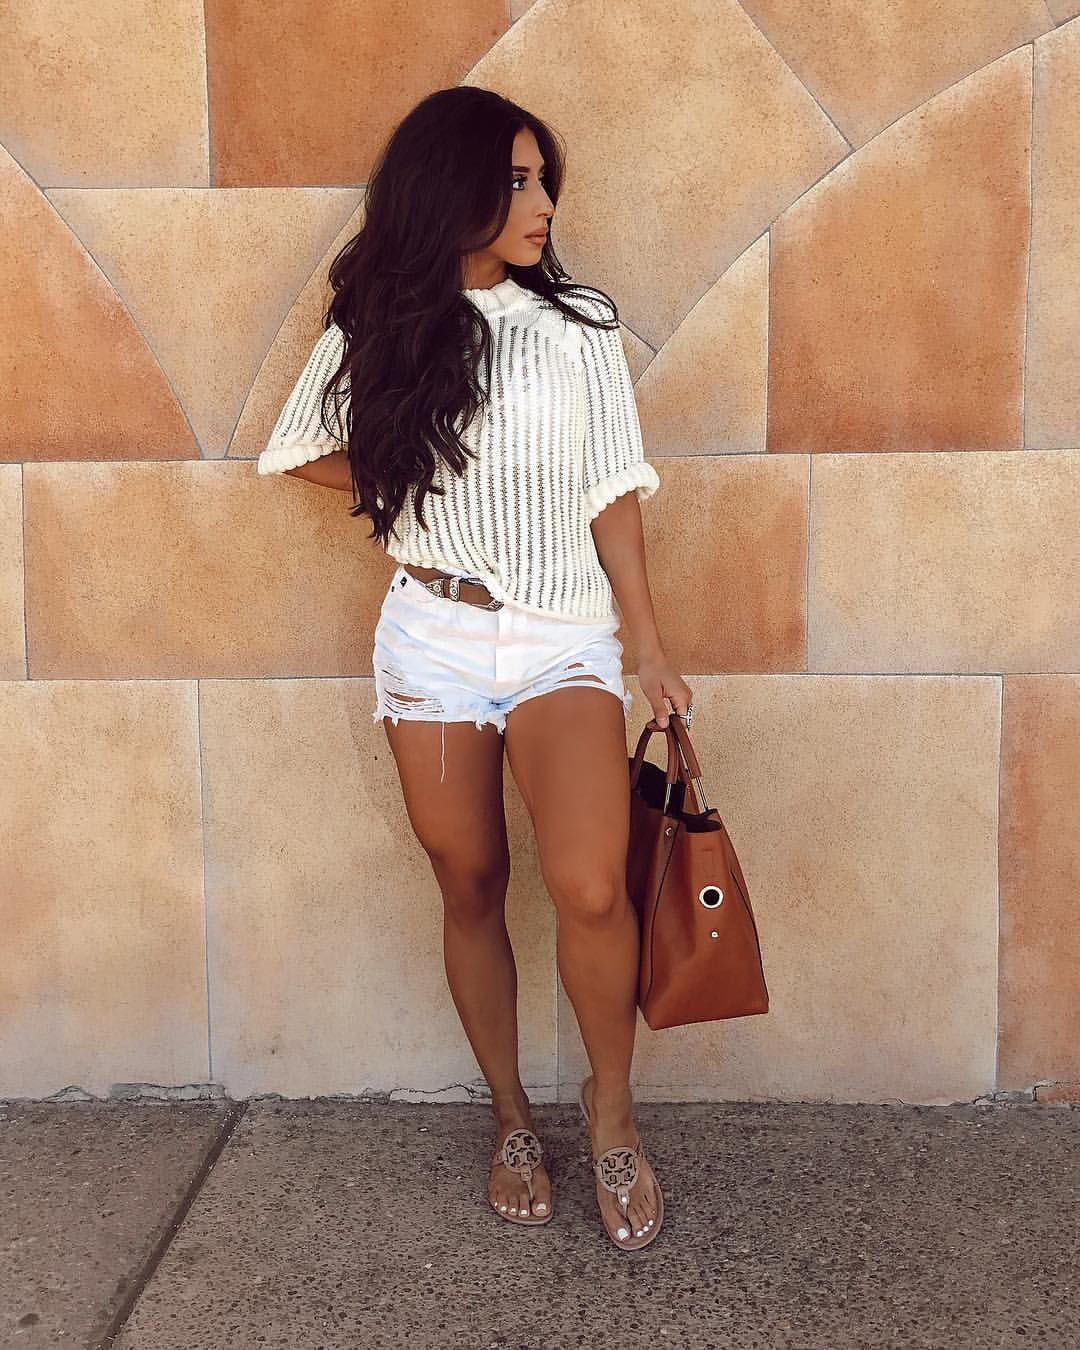 887da13d134b1 (@yvetteg23) on Instagram: cream white knit sweater white distressed high  waisted shorts outfit sandals. Fall outfit style outfit summer spring  casual style ...